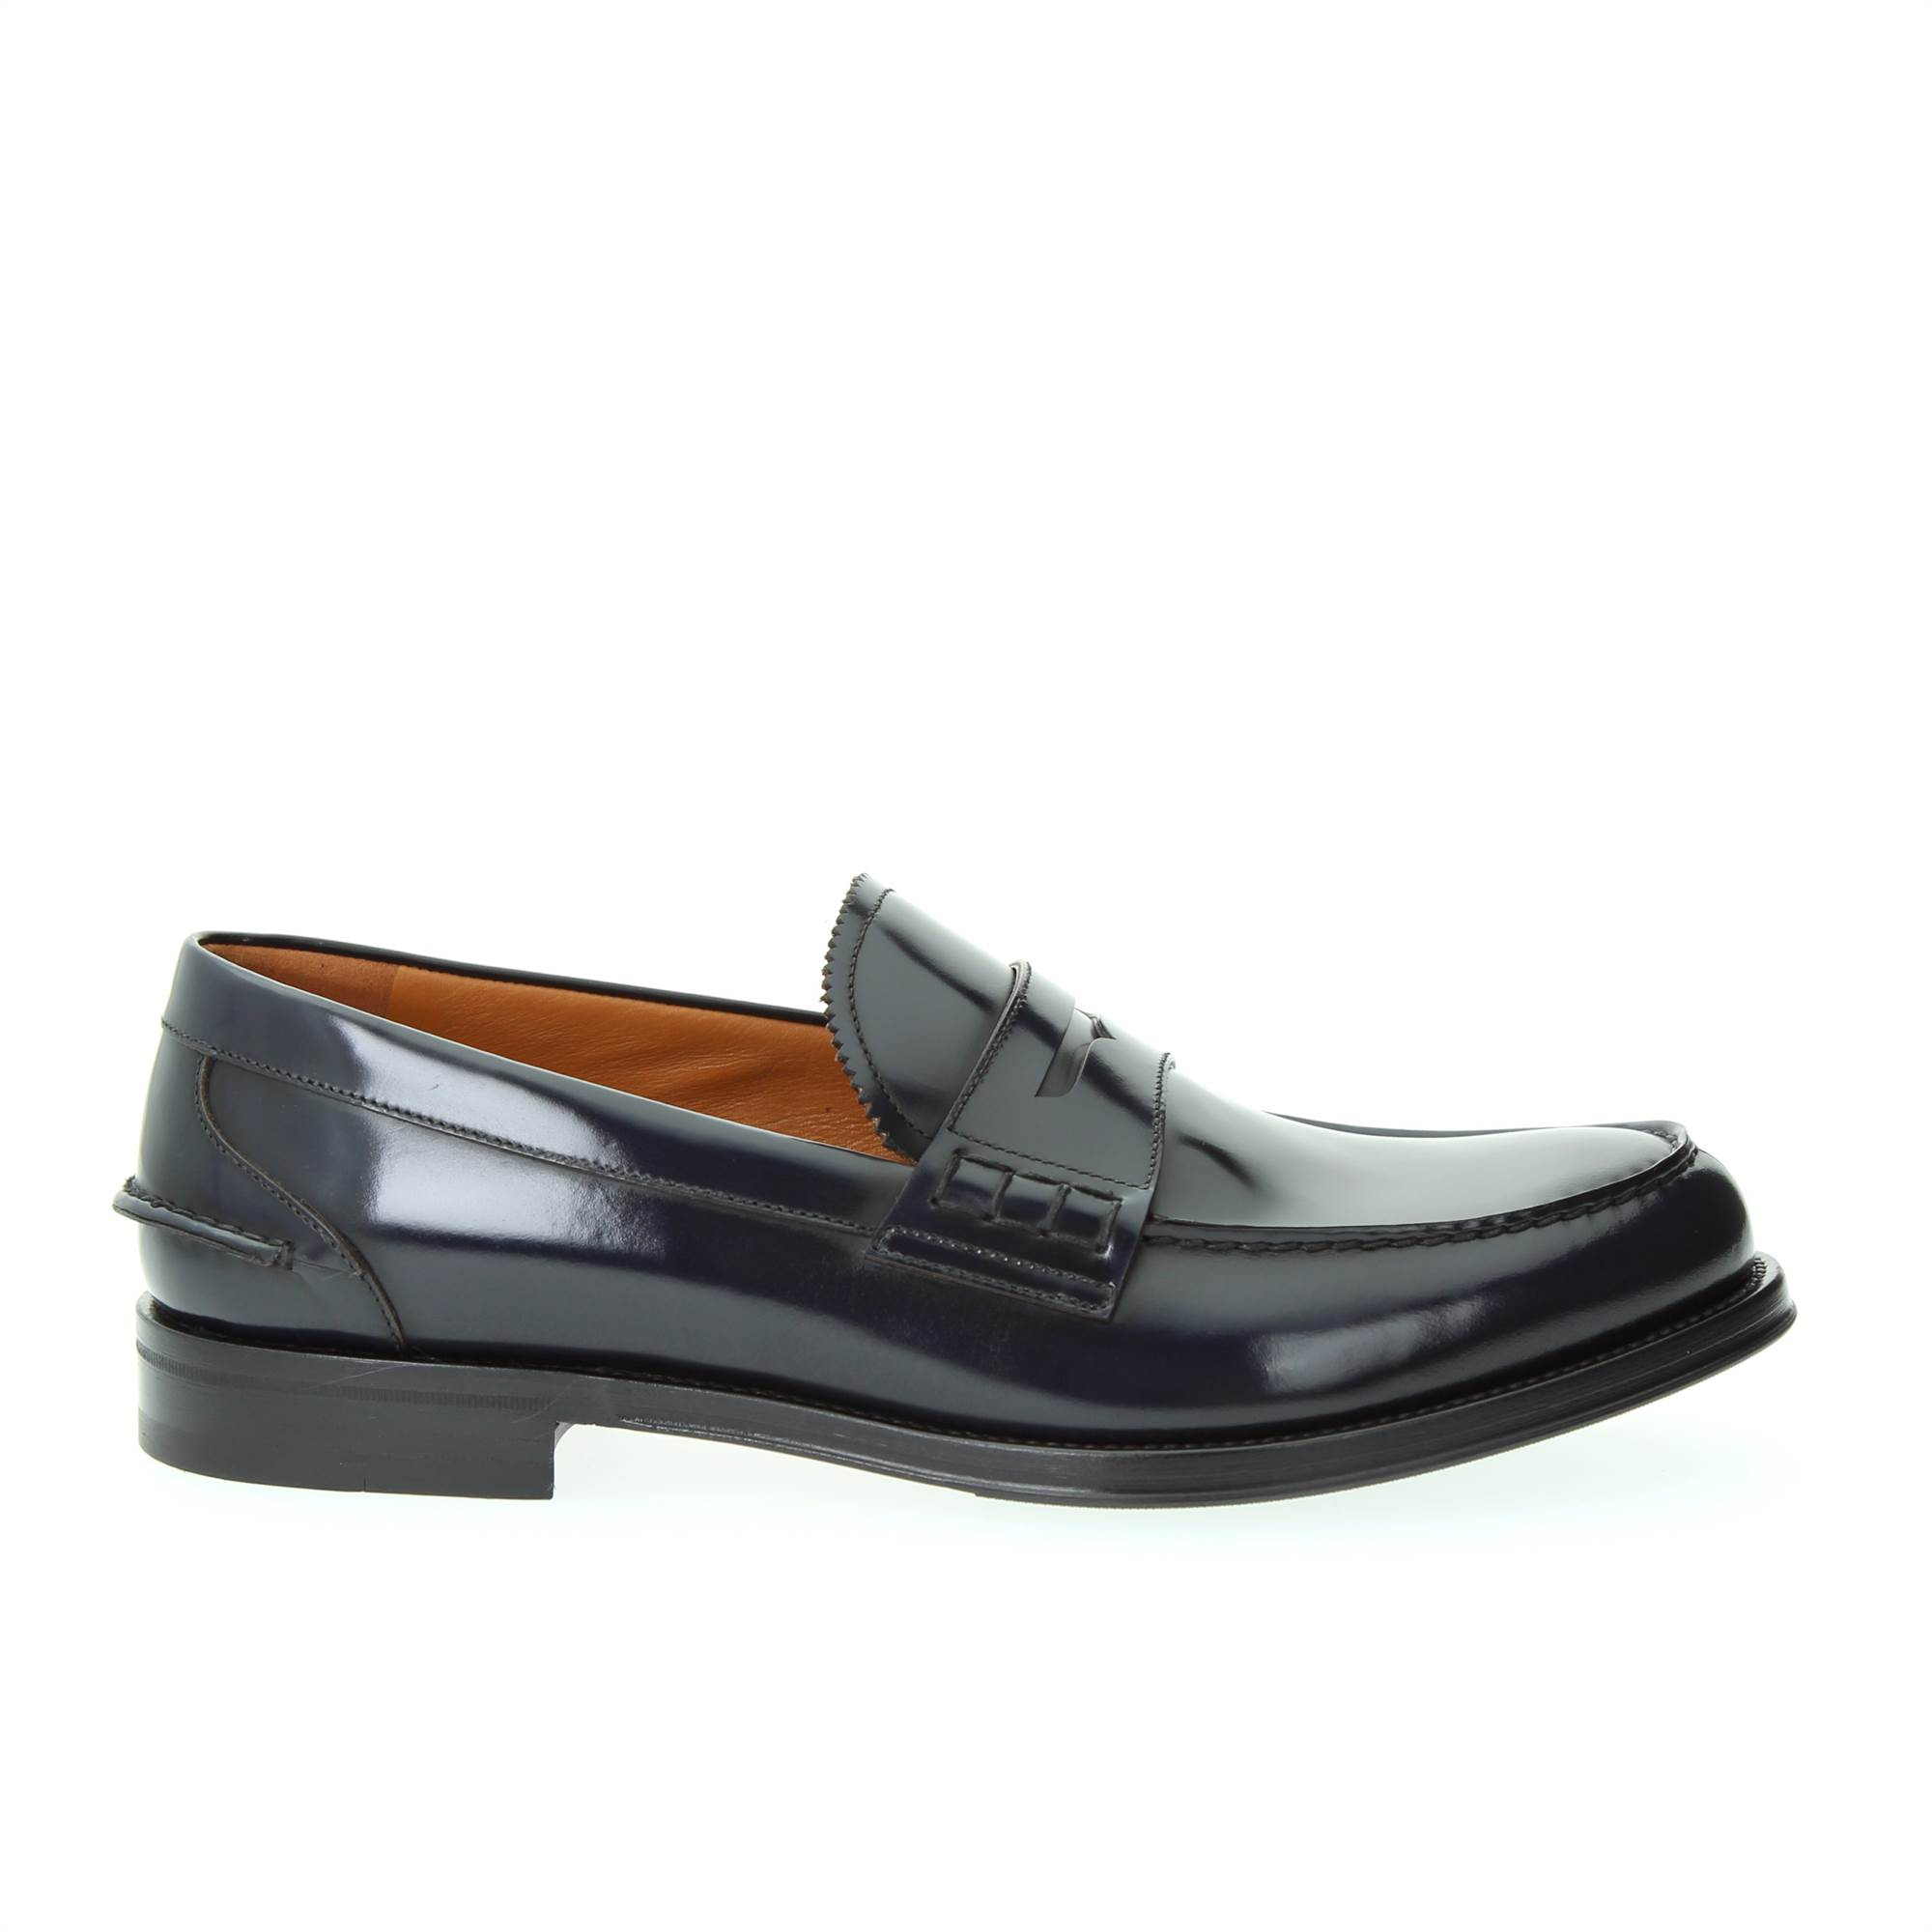 LANCIOTTI DE VERZI 243PS BLUE Shoes Man MOCCASIN